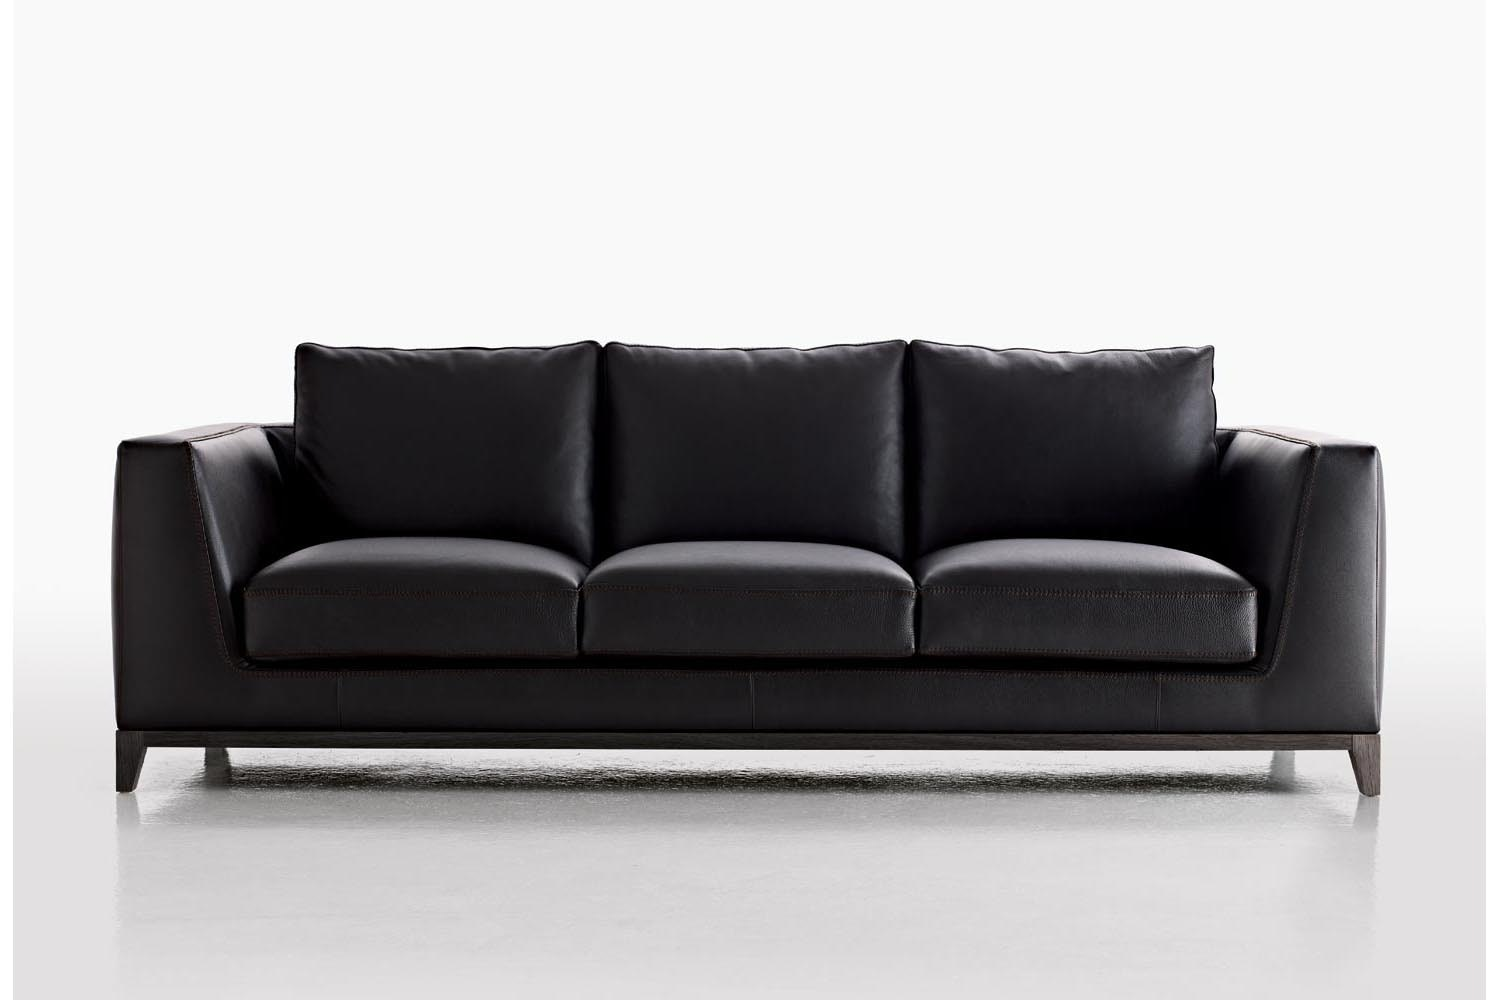 Lutetia 2010 Sofa by Antonio Citterio for Maxalto